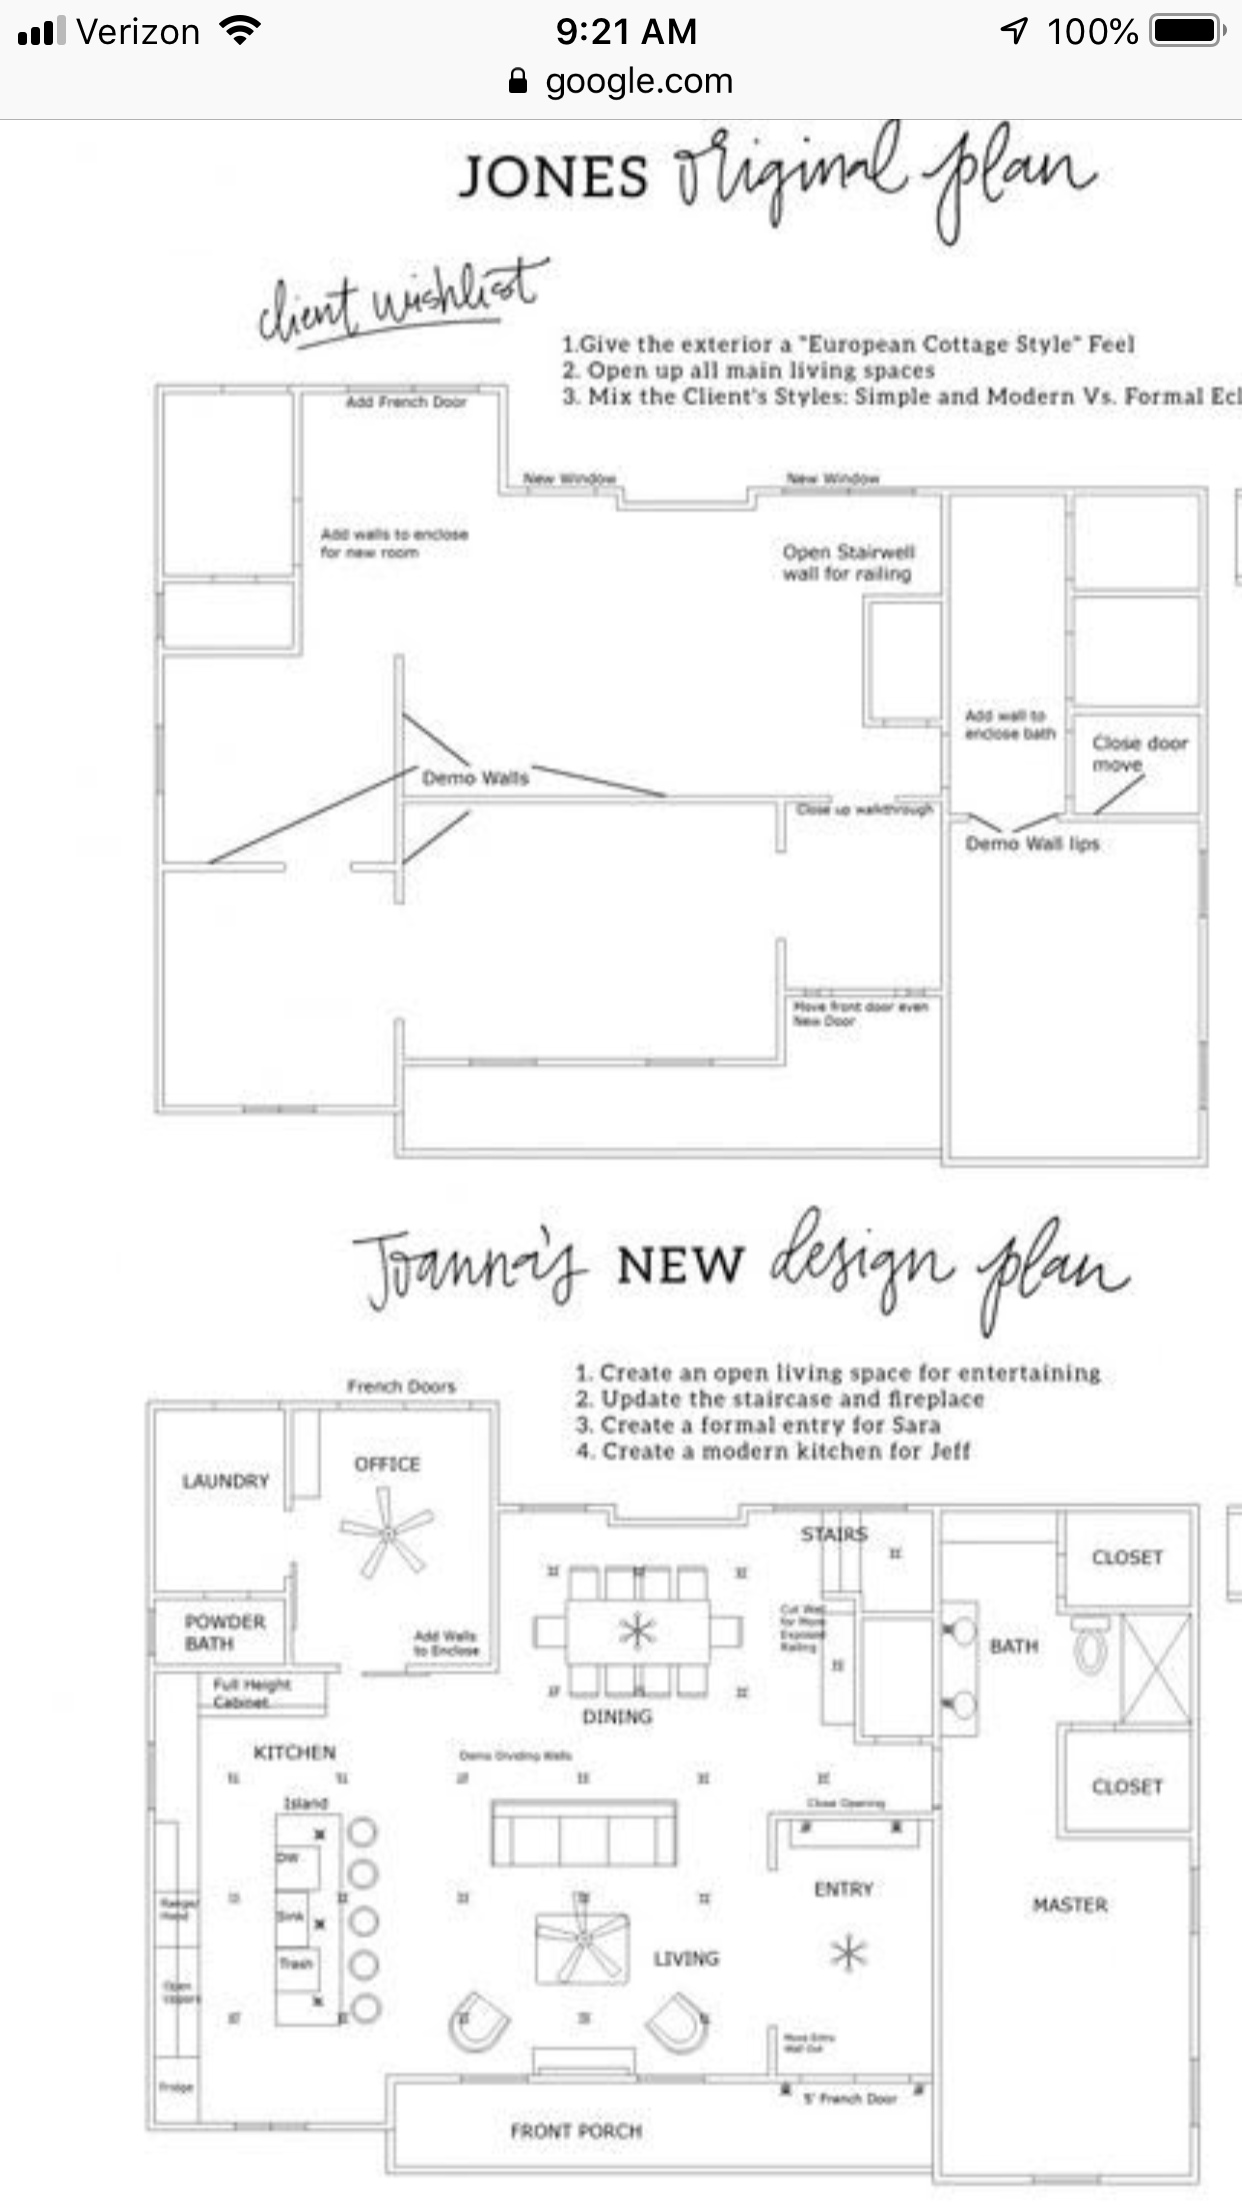 Pin By Leah Allen On Plans Layout House Plans Farmhouse New House Plans Modern Farmhouse Plans